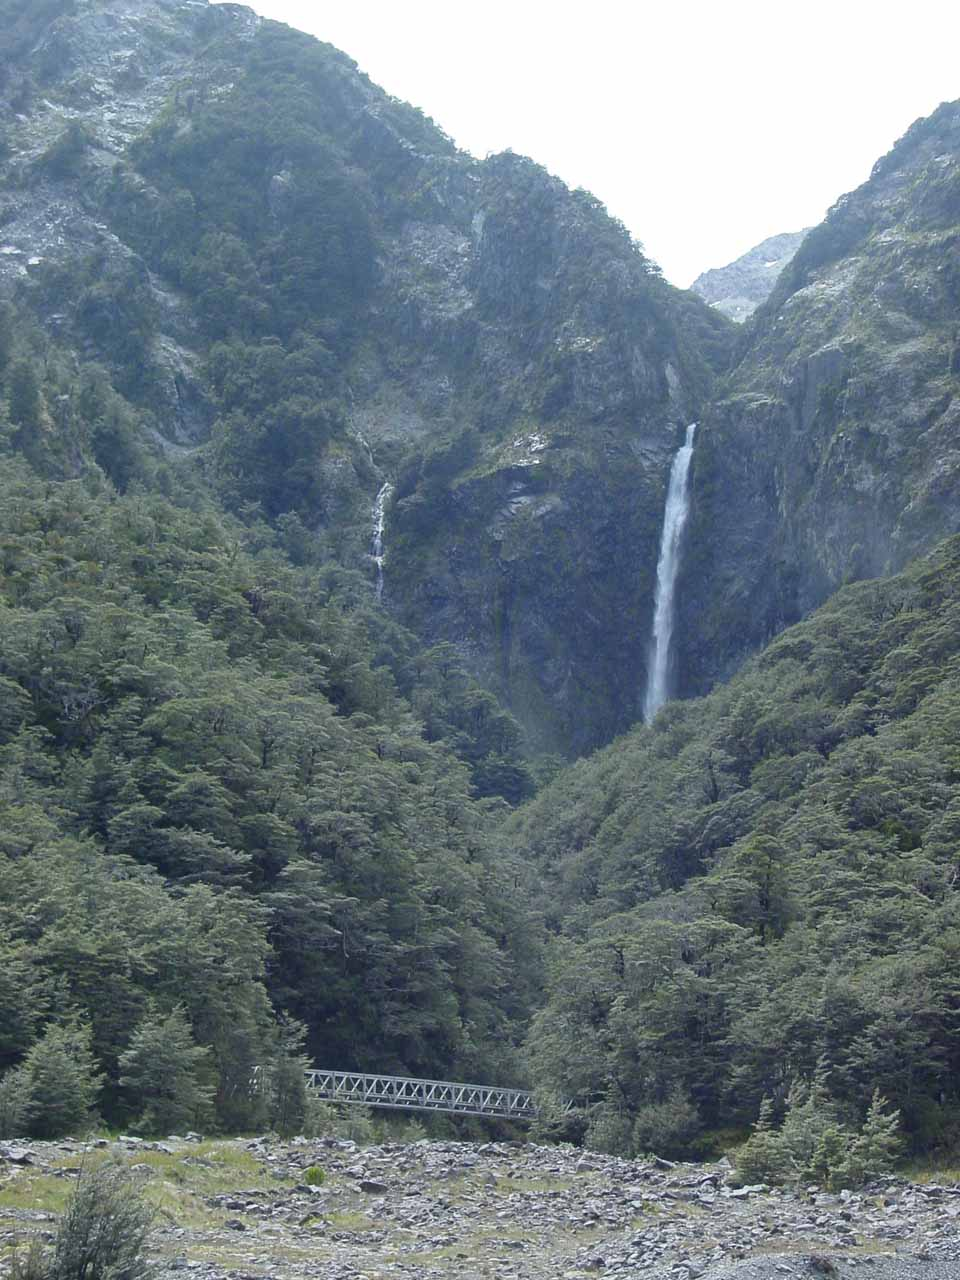 Approaching the bridge traversing the Bealey River with Devils Punchbowl Falls looming large over the scene